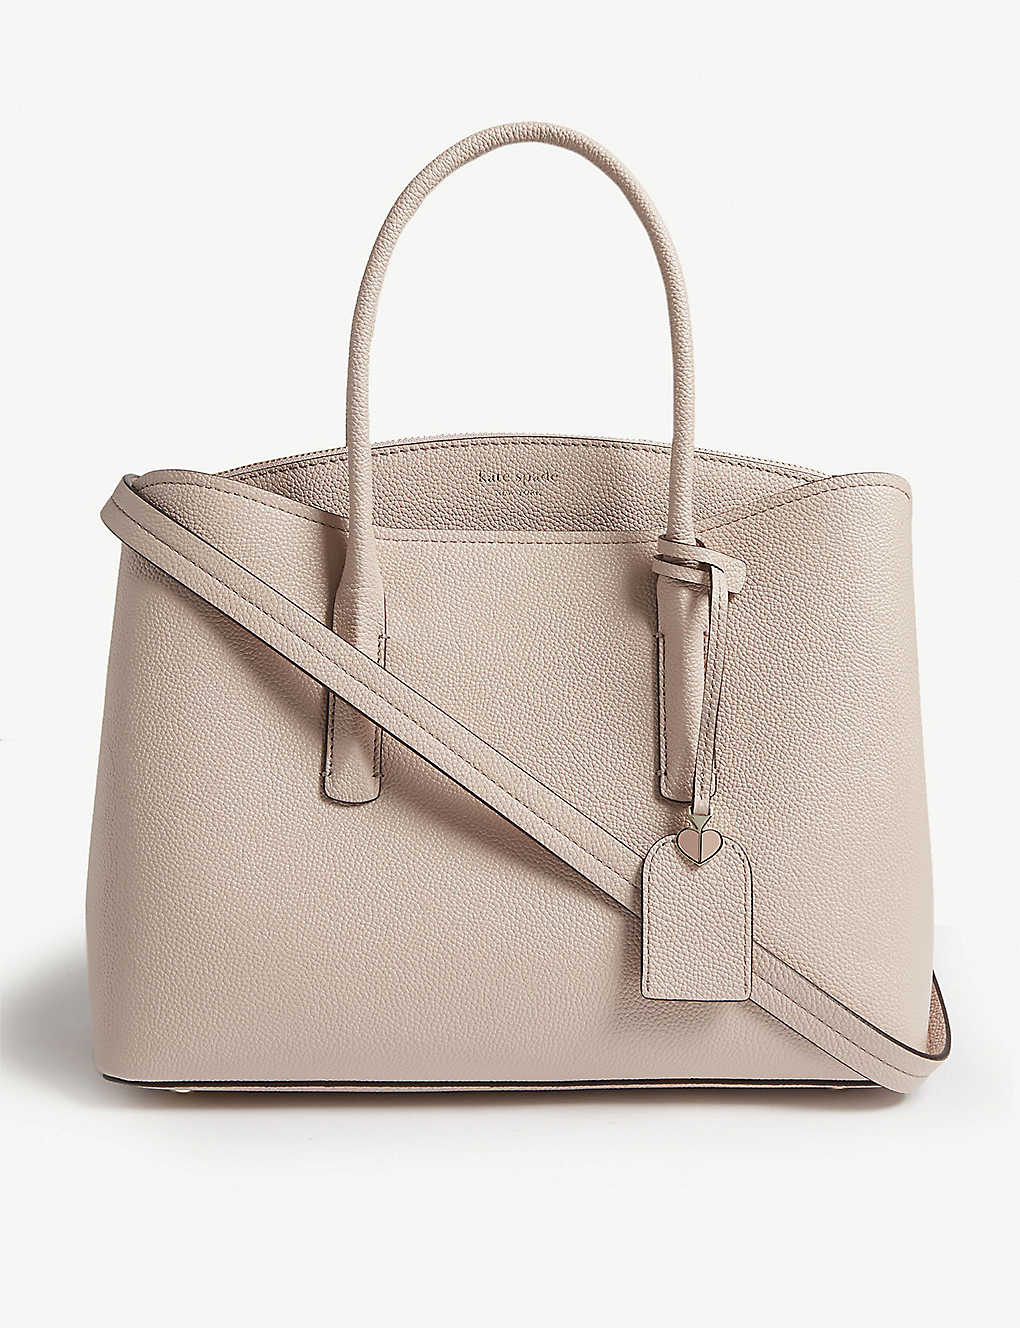 2f2539dbf66a KATE SPADE NEW YORK - Margaux large grained leather tote ...